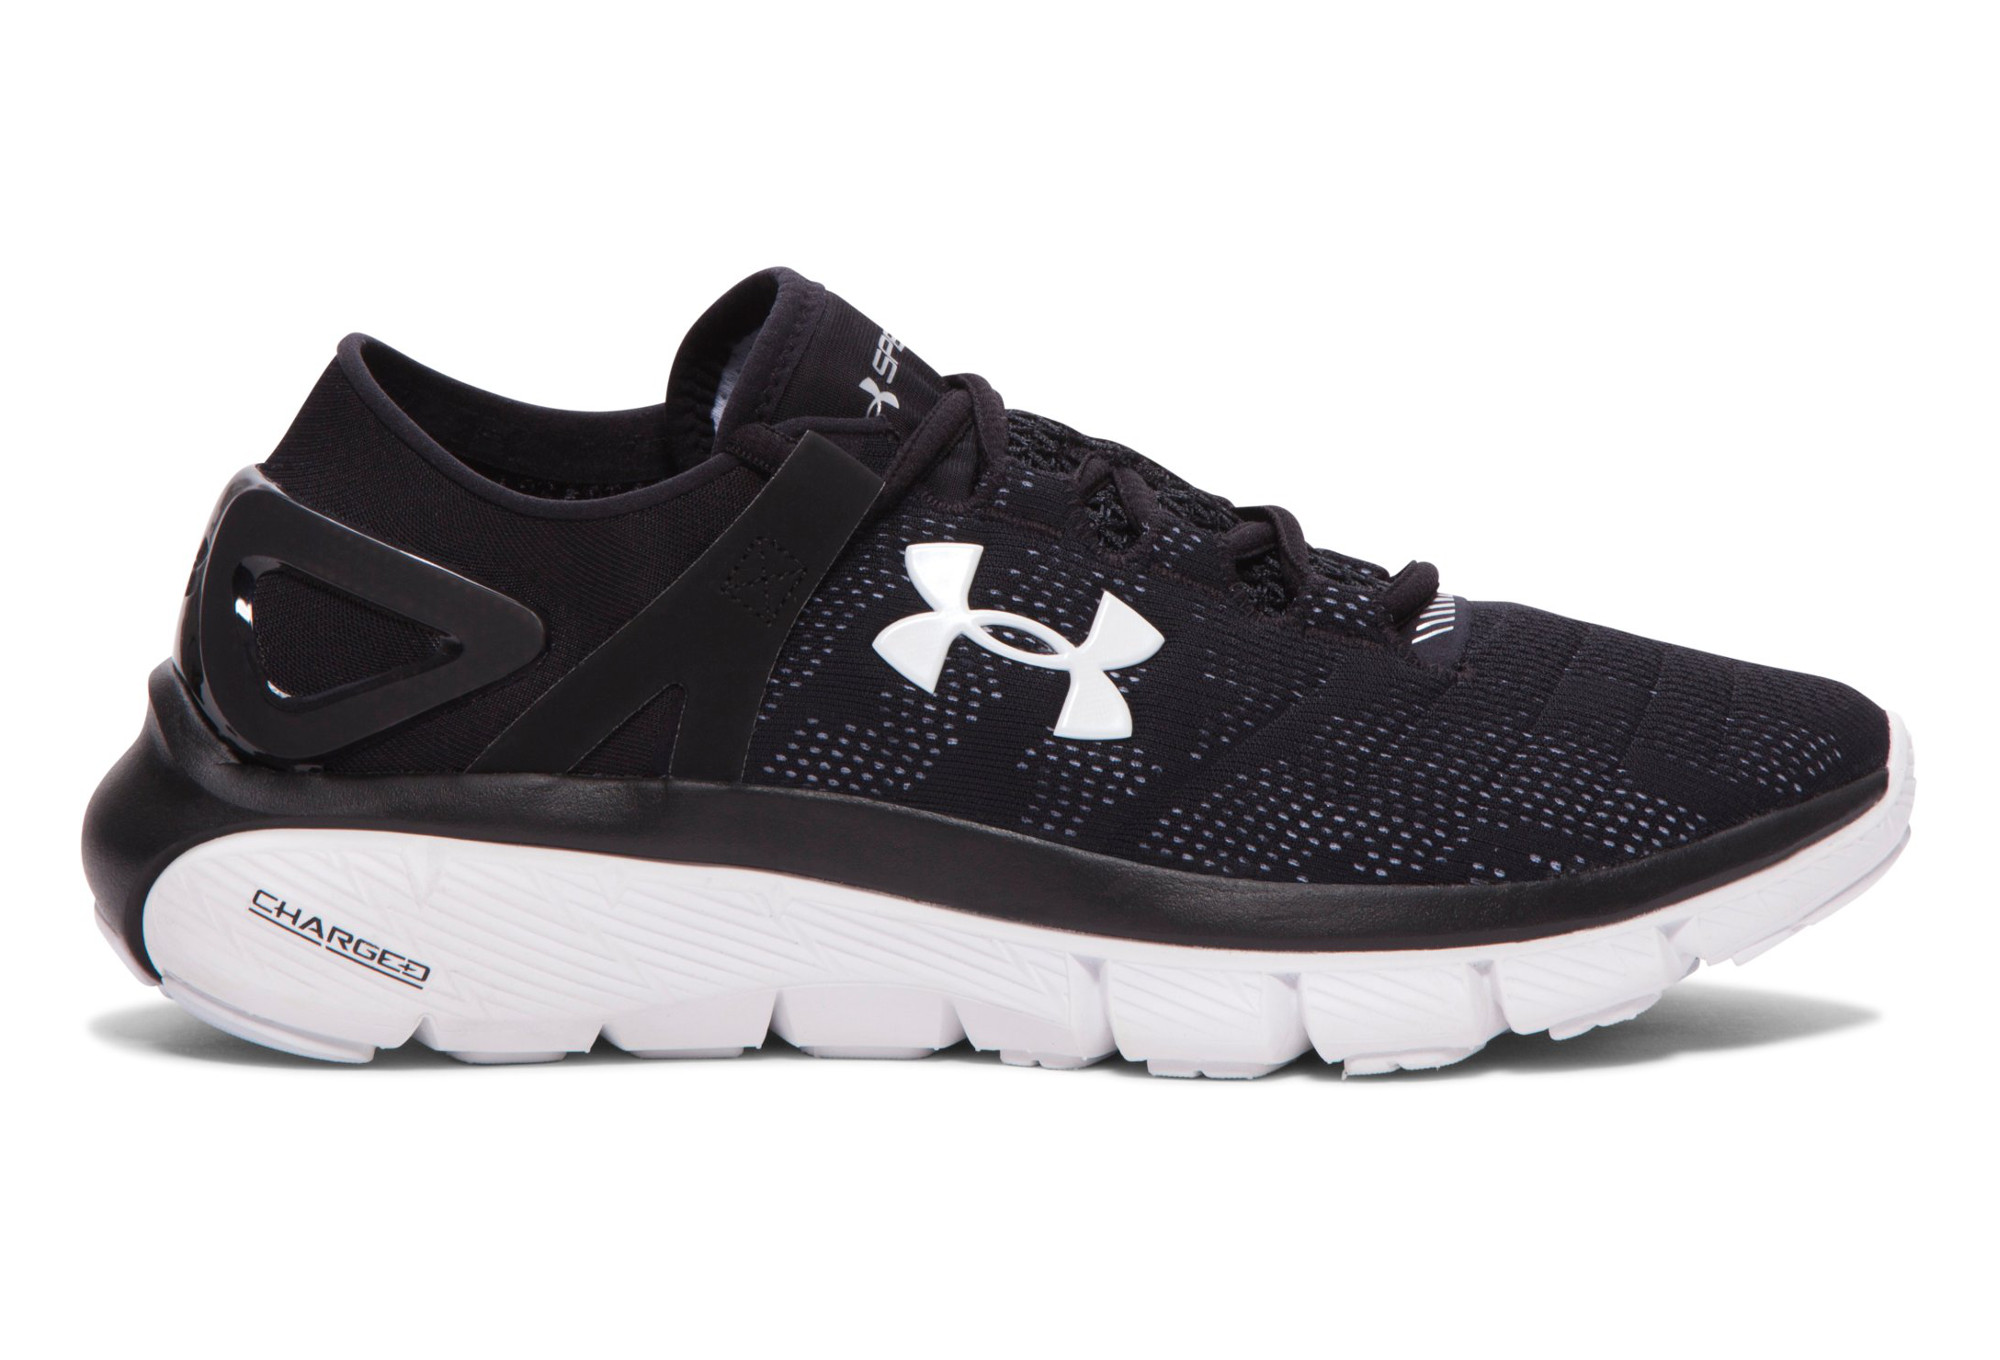 UNDER ARMOUR SPEEDFORM FORTIS VENT Pair of Shoes Black Women ... 9b4d429a8f